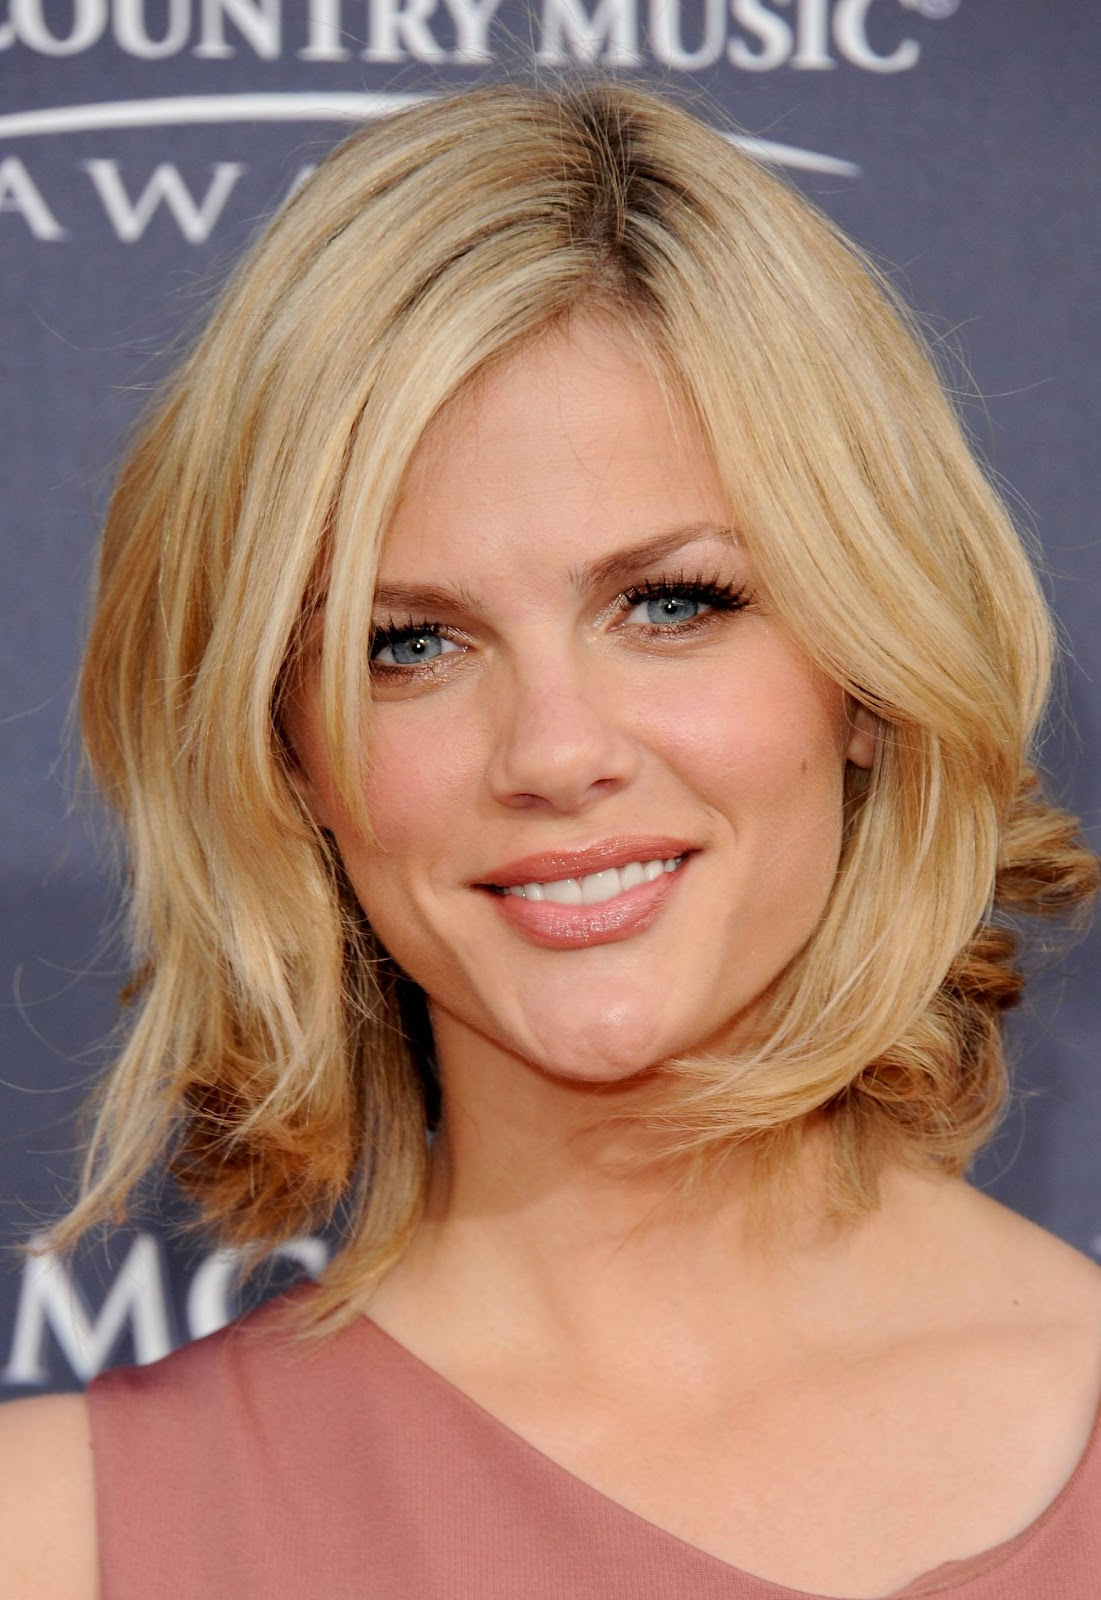 Prom Hairstyles, Long Hairstyle 2011, Hairstyle 2011, New Long Hairstyle 2011, Celebrity Long Hairstyles 2263